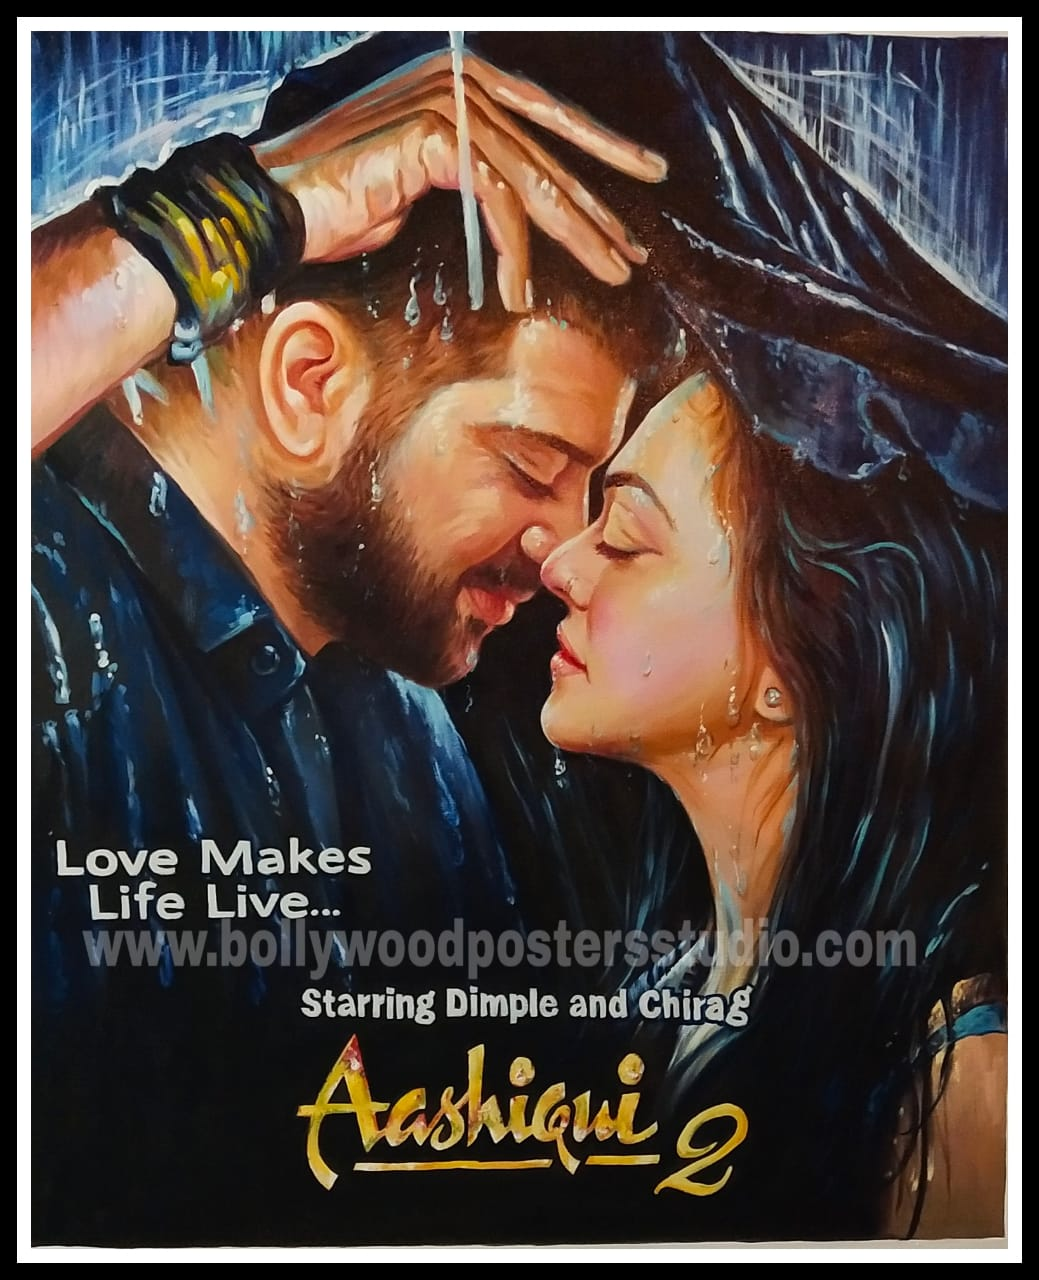 Film poster painting